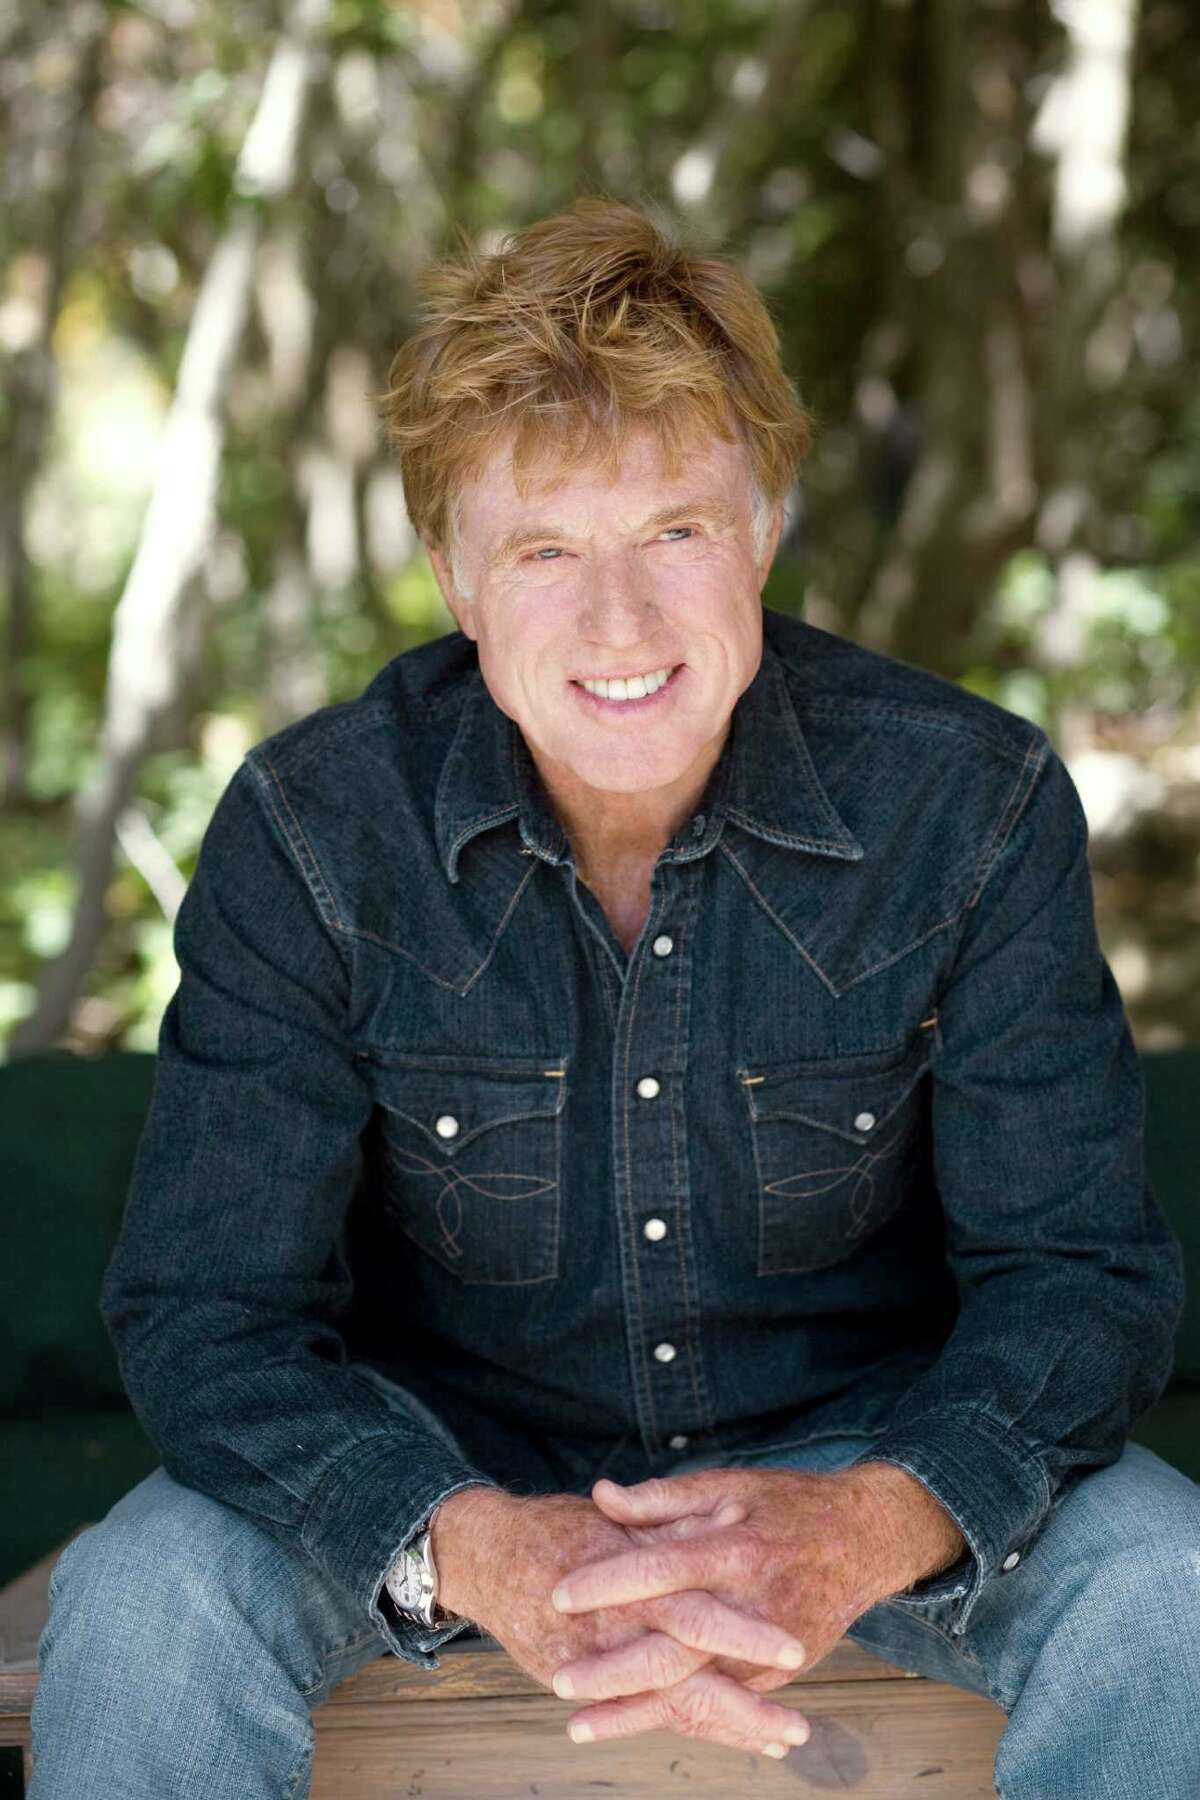 Robert Redford will appear Nov. 9 at the 2012 Cinema Arts Festival, where he?ll receive the Levantine Cinema Arts Award and discuss his 50-year career in film. (Kristina Loggia photo)